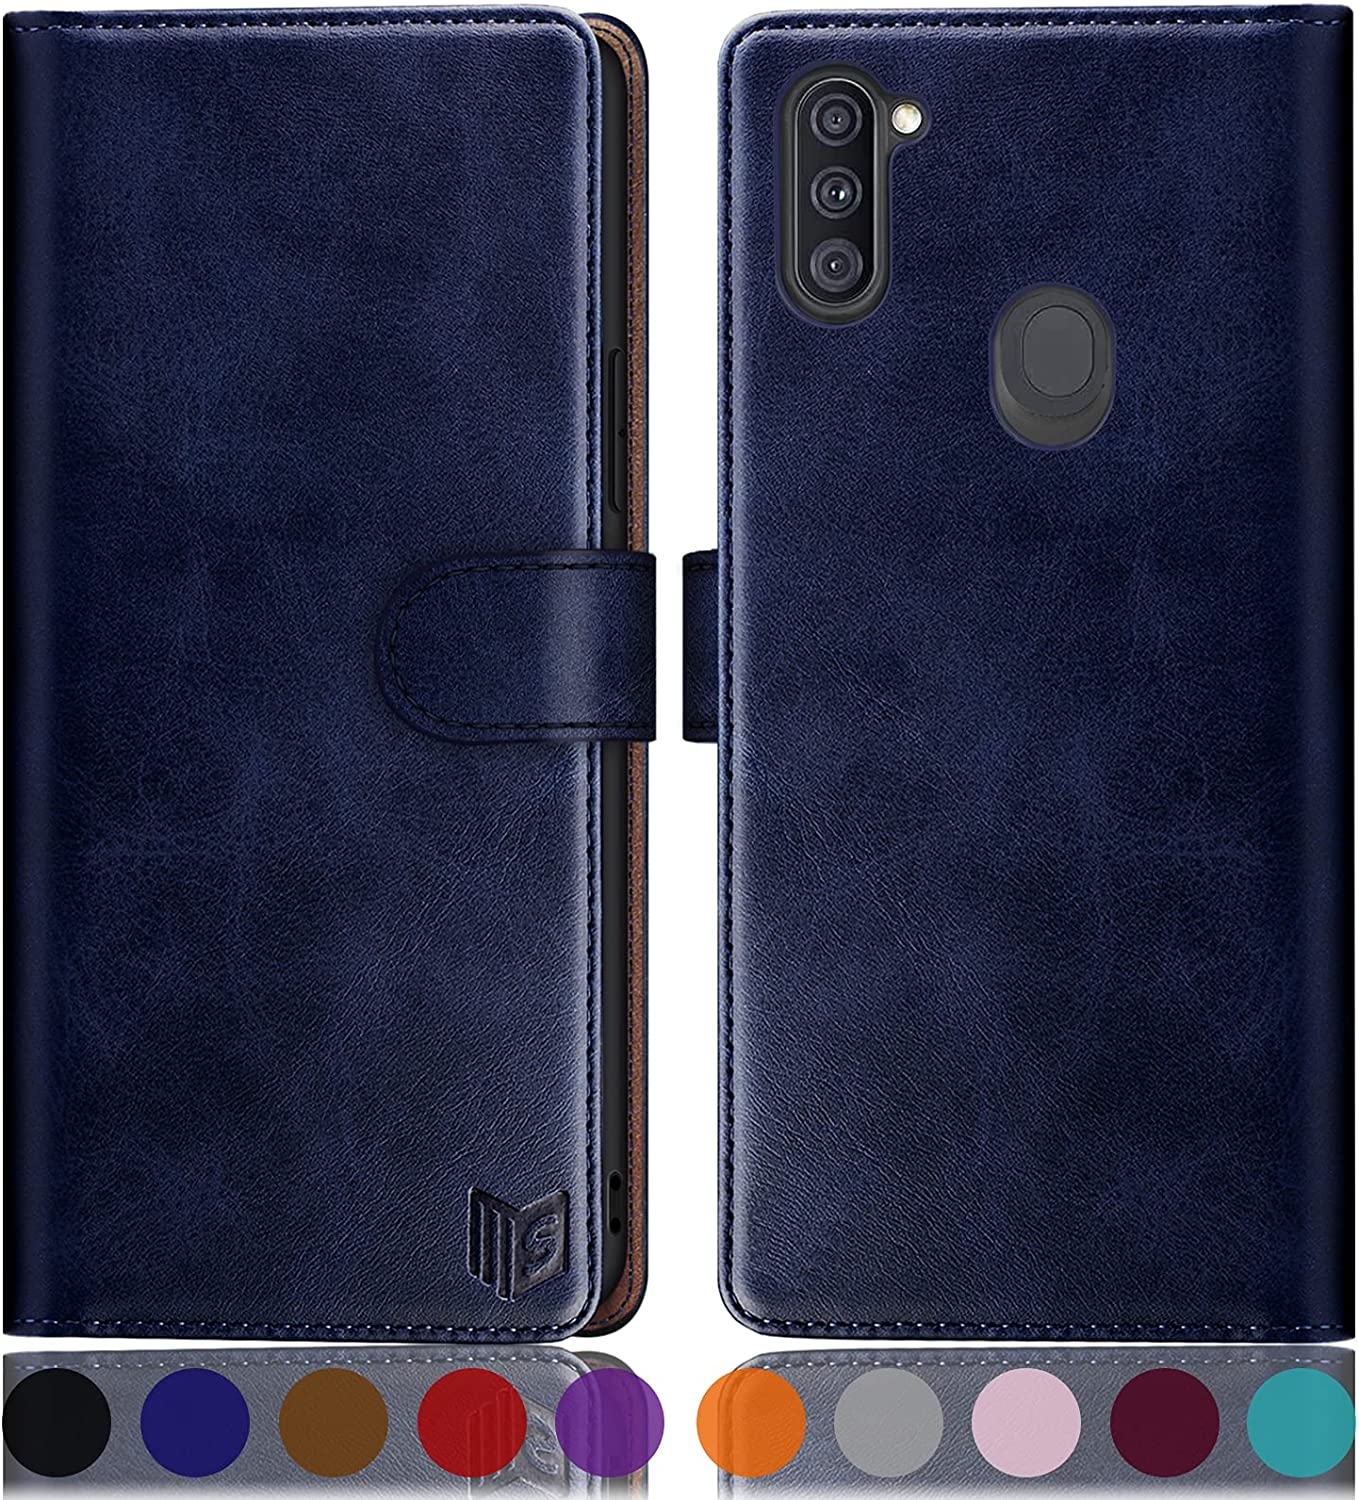 SUANPOT for Samsung Galaxy A11 with RFID Blocking Leather Wallet case Credit Card Holder, Flip Folio Book Phone case Shockproof Accessories Cover for Women Men for Samsung A11 case Wallet (Blue)